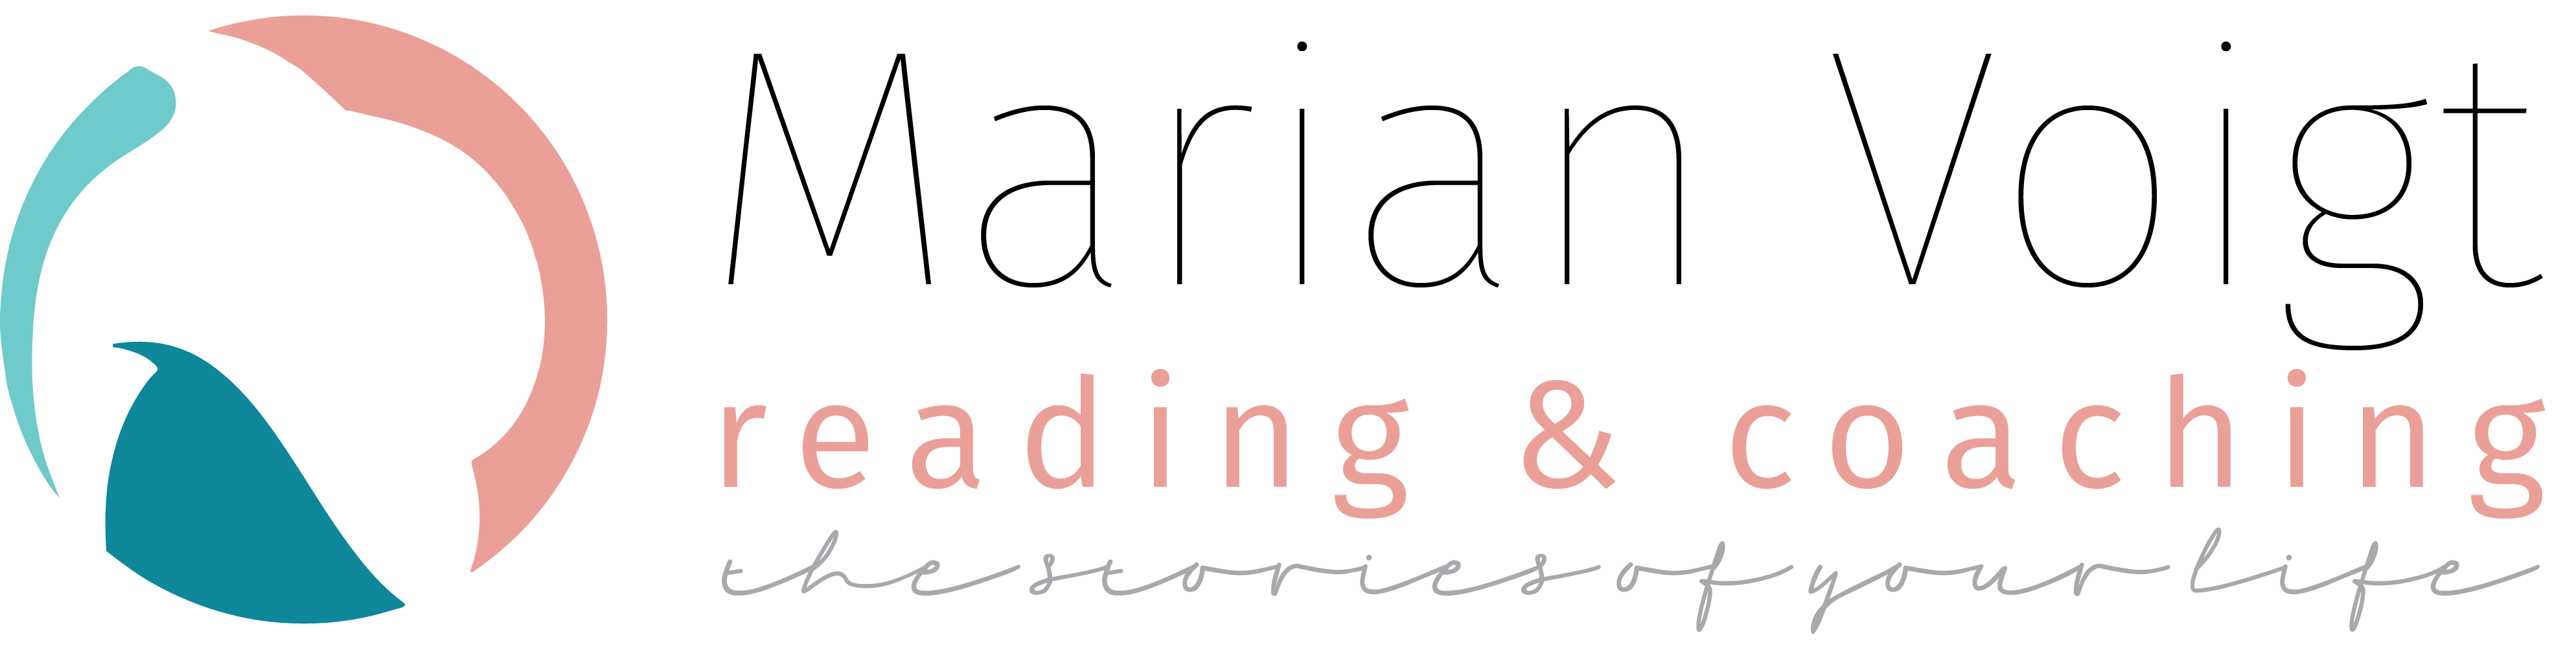 Marian Voigt Reading & Coaching